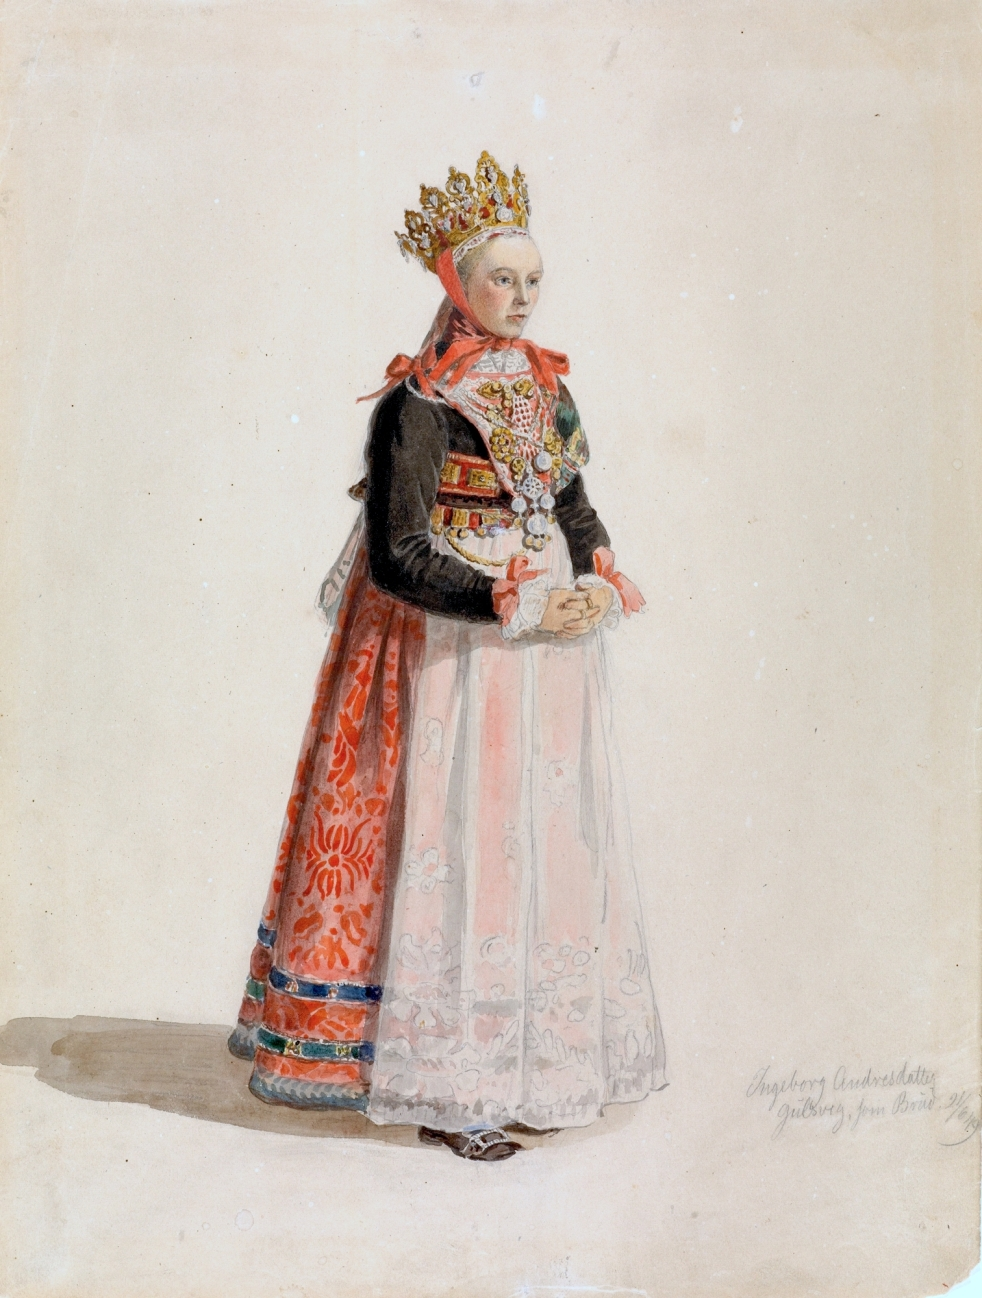 Wings of Whimsy: Adolph Tidemand - Bride from Hallingdal 1849